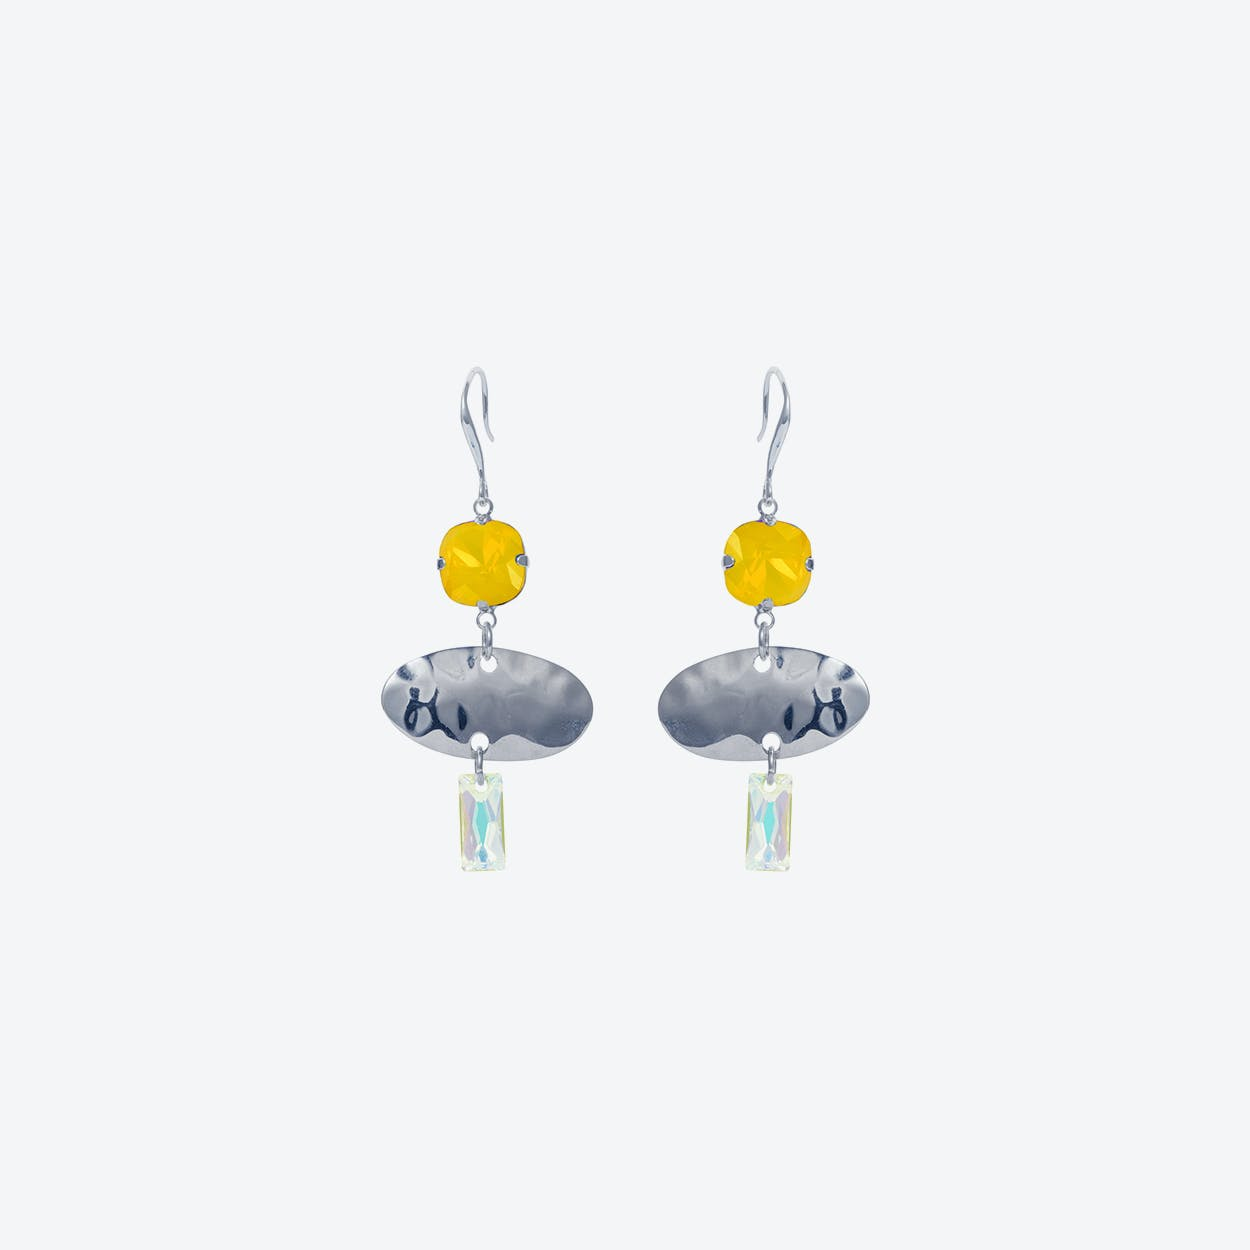 Oval Textured Earring in Silver Yellow